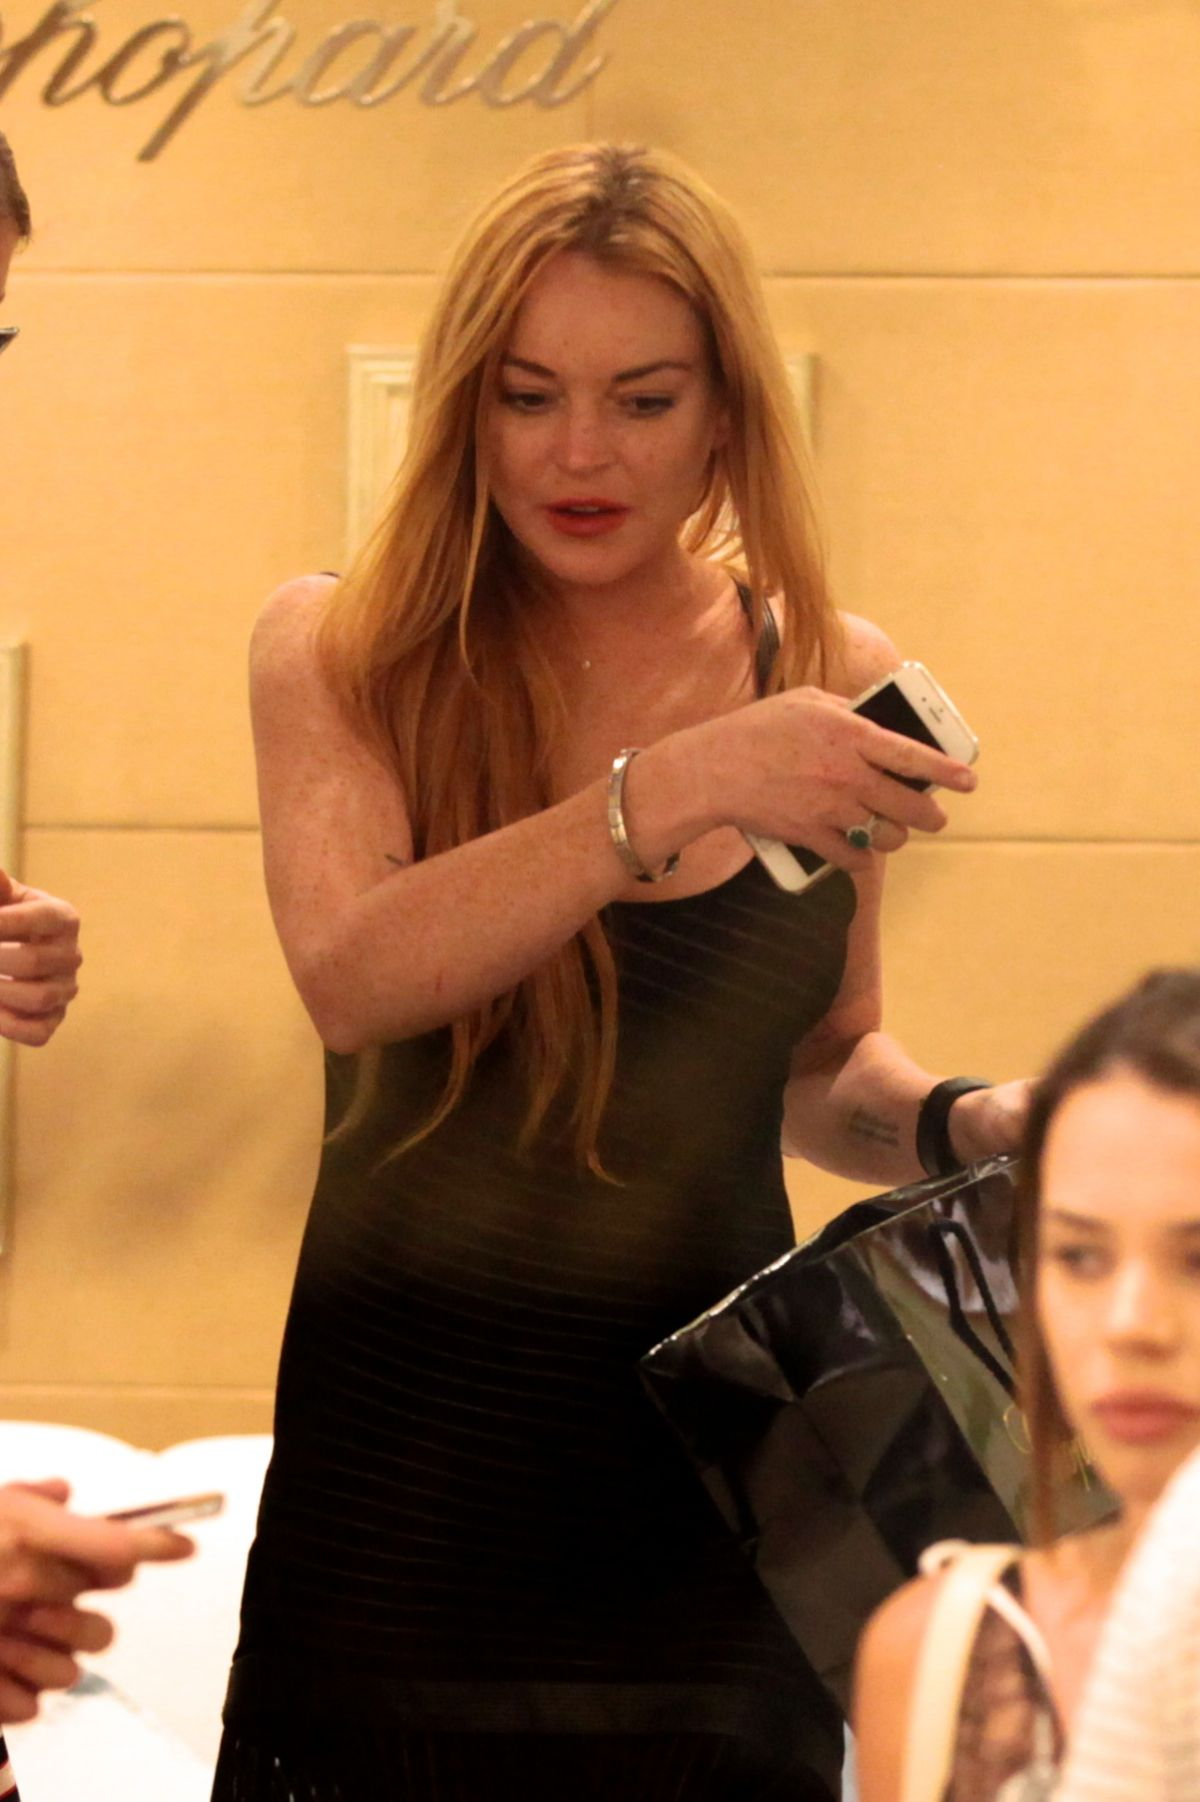 LINDSAY LOHAN Out for Dinner with Friends in Sardinia 07/29/2016